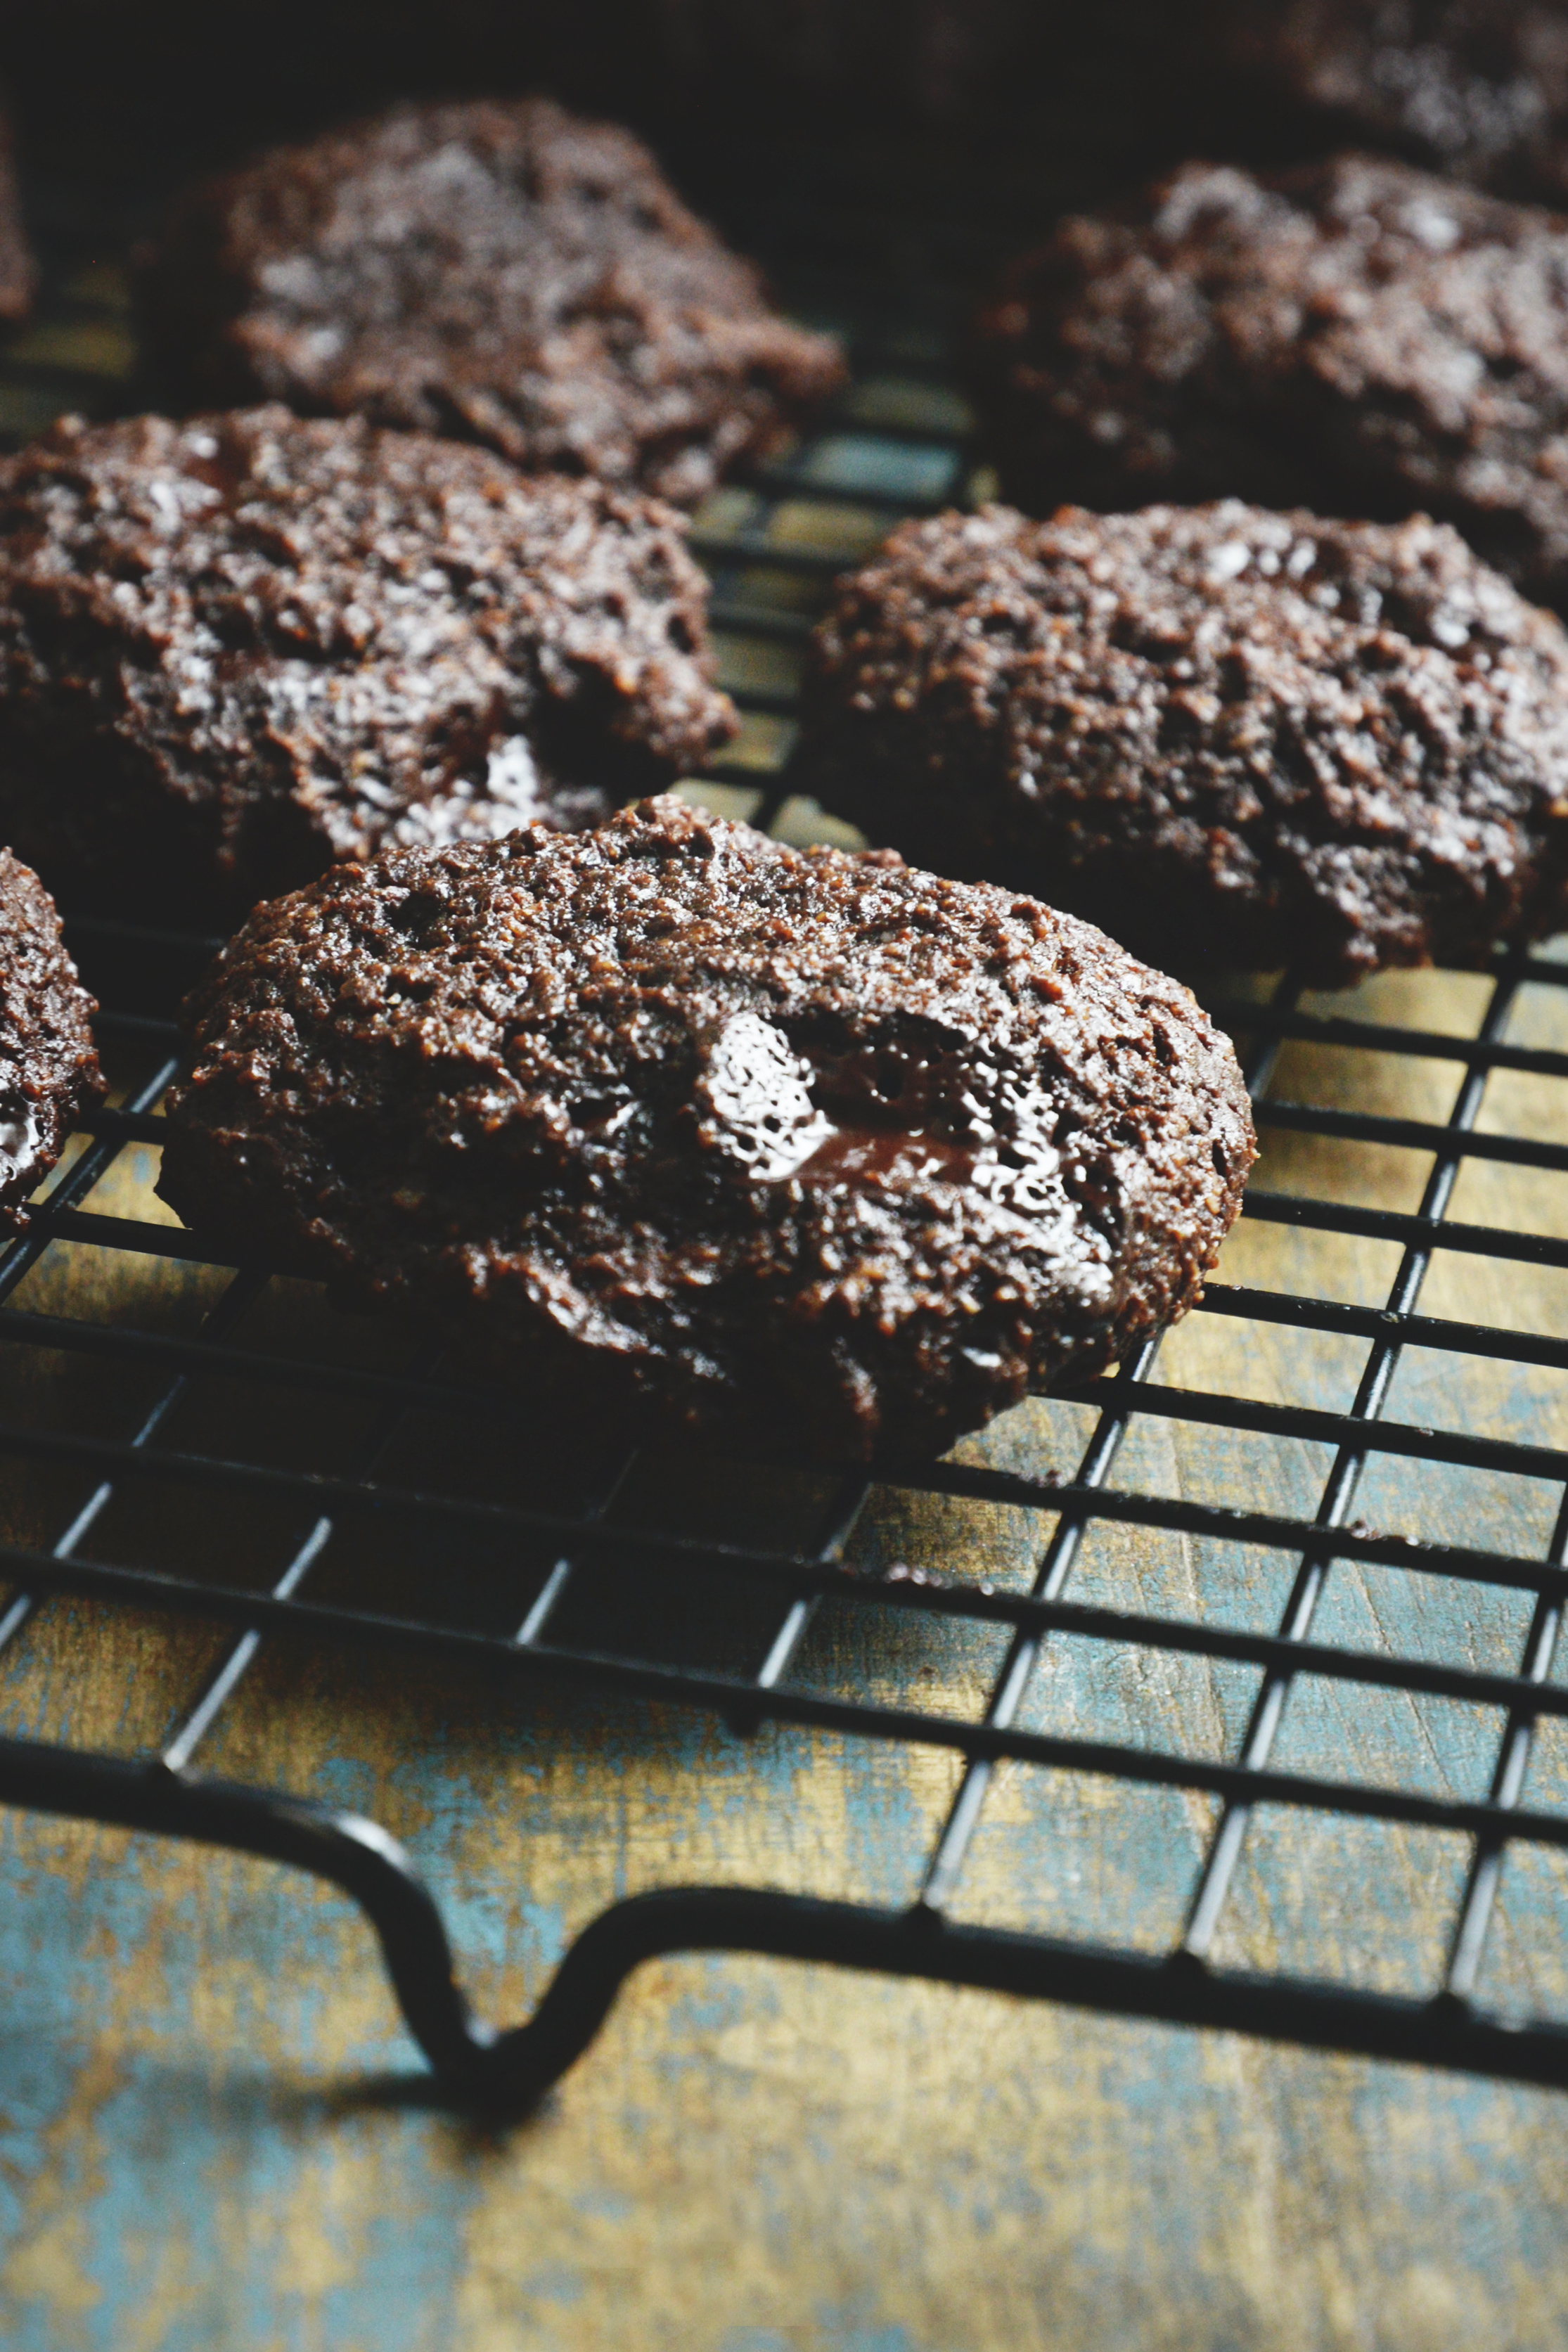 Keto-Friendly Double Chocolate Chip Cookies-On a cooling rack.